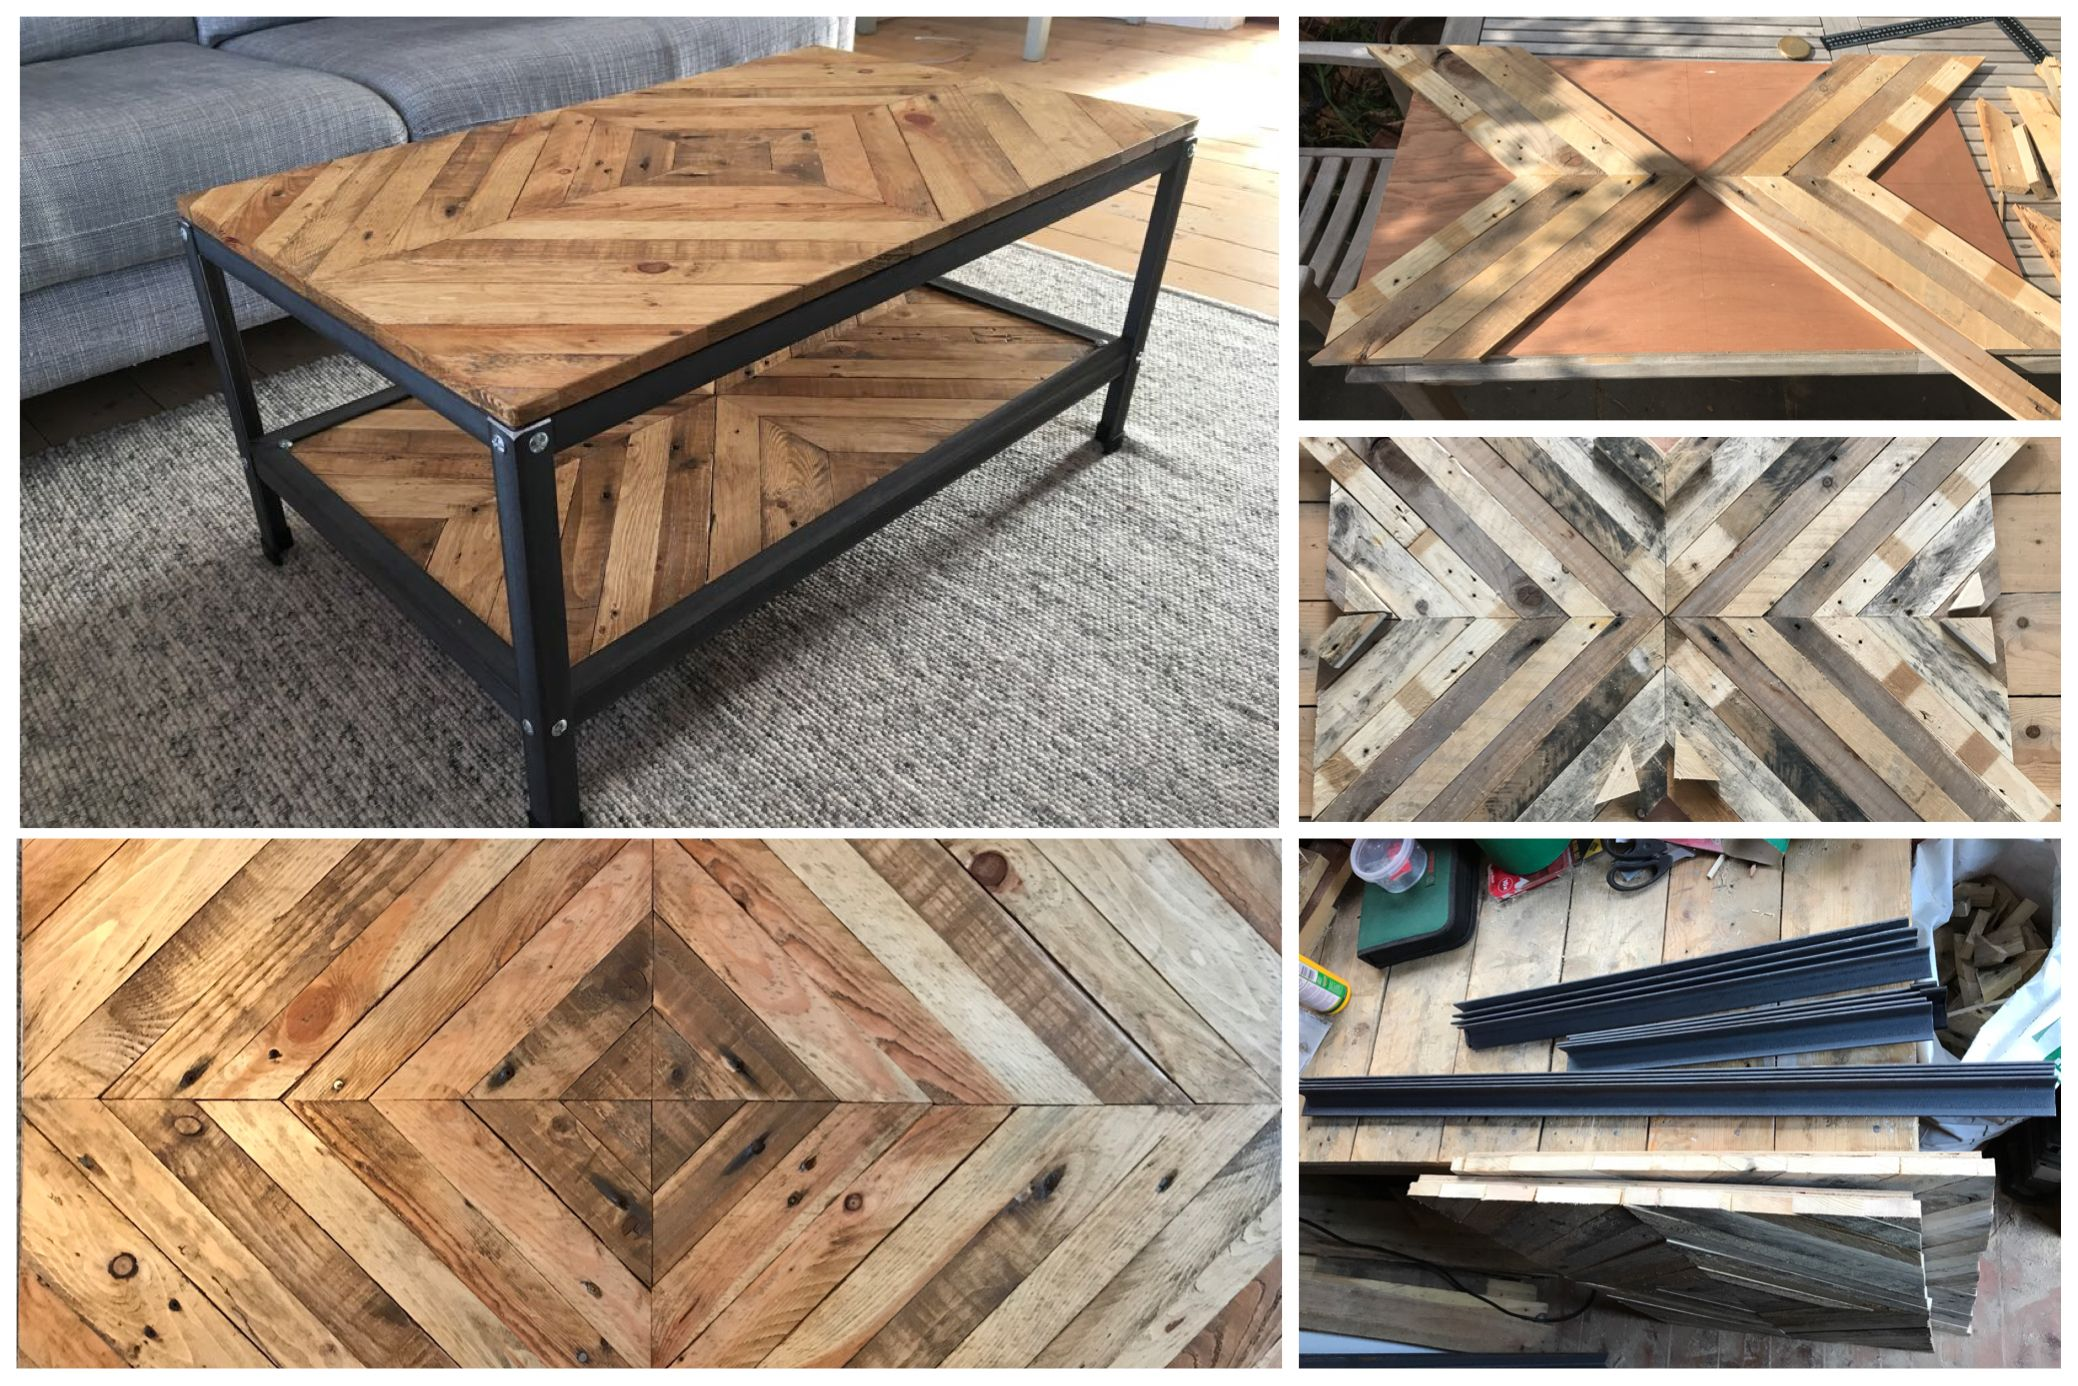 Coffee Table Made Out Of Pallet Wood And Mild Steel Pallet Projects Decor Coffee Table Wood Wood Pallets [ 1386 x 2078 Pixel ]